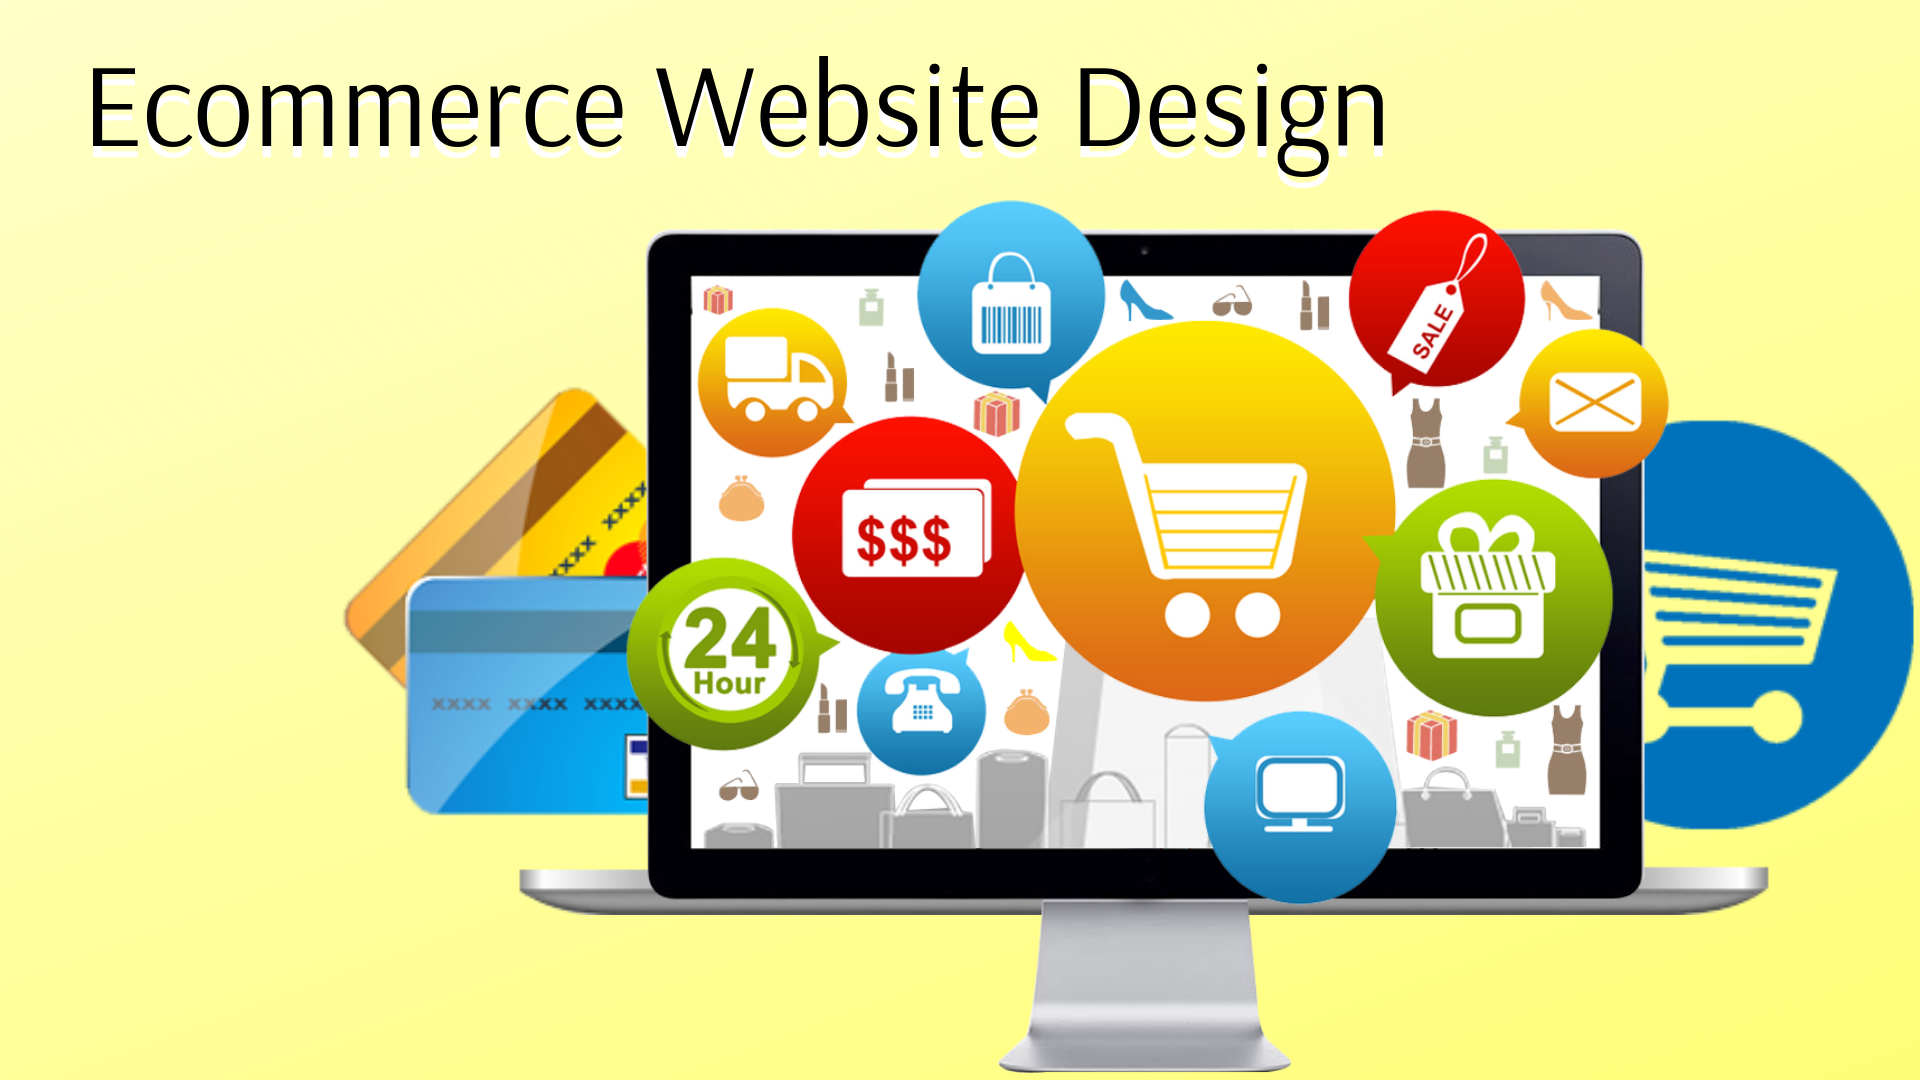 Questions to Ask Before Hiring an eCommerce Web Development Company